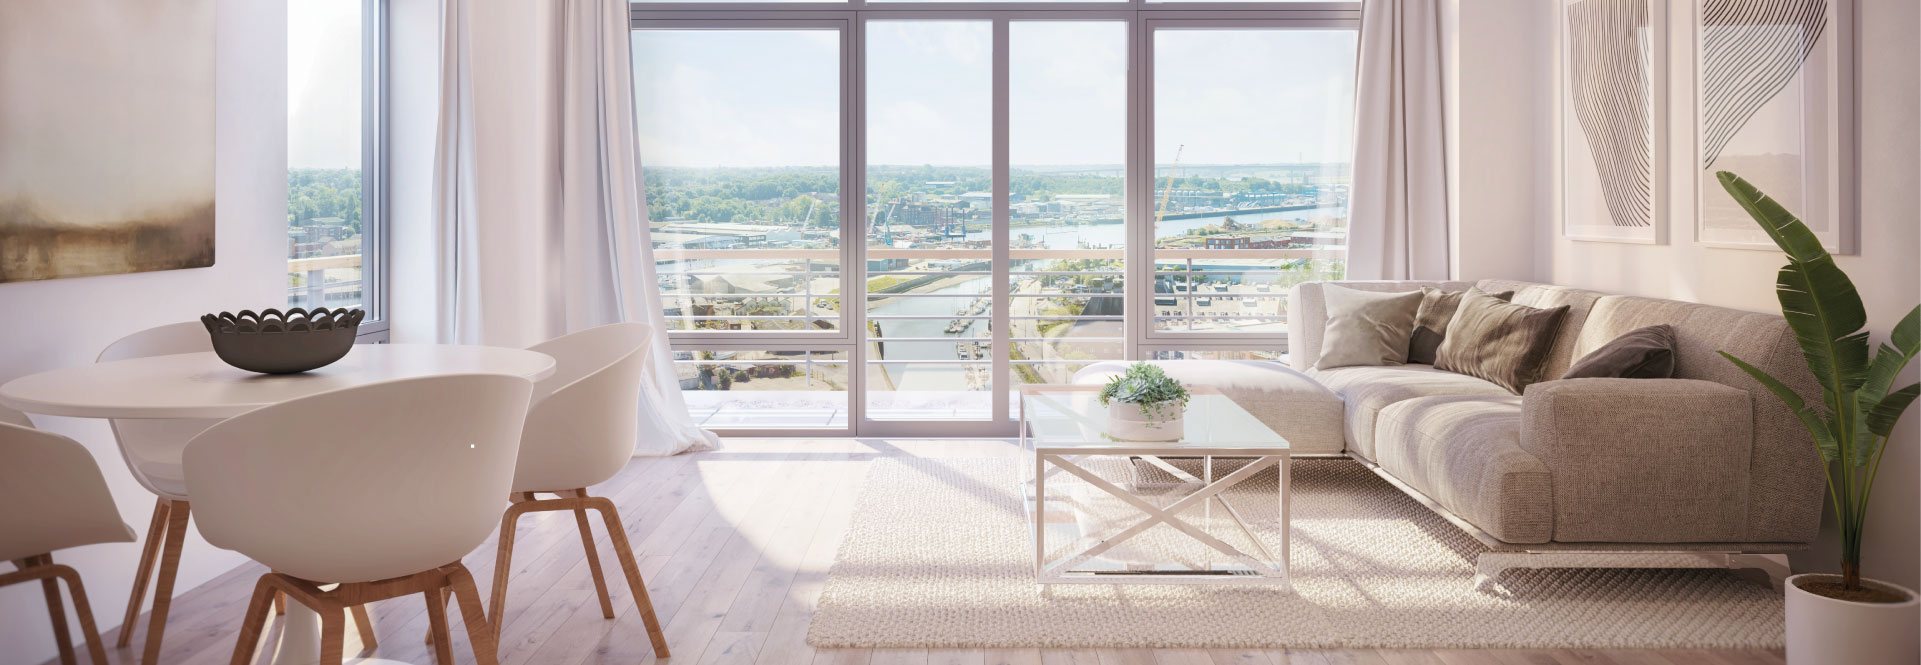 TheWinerack_Ipswich_apartments